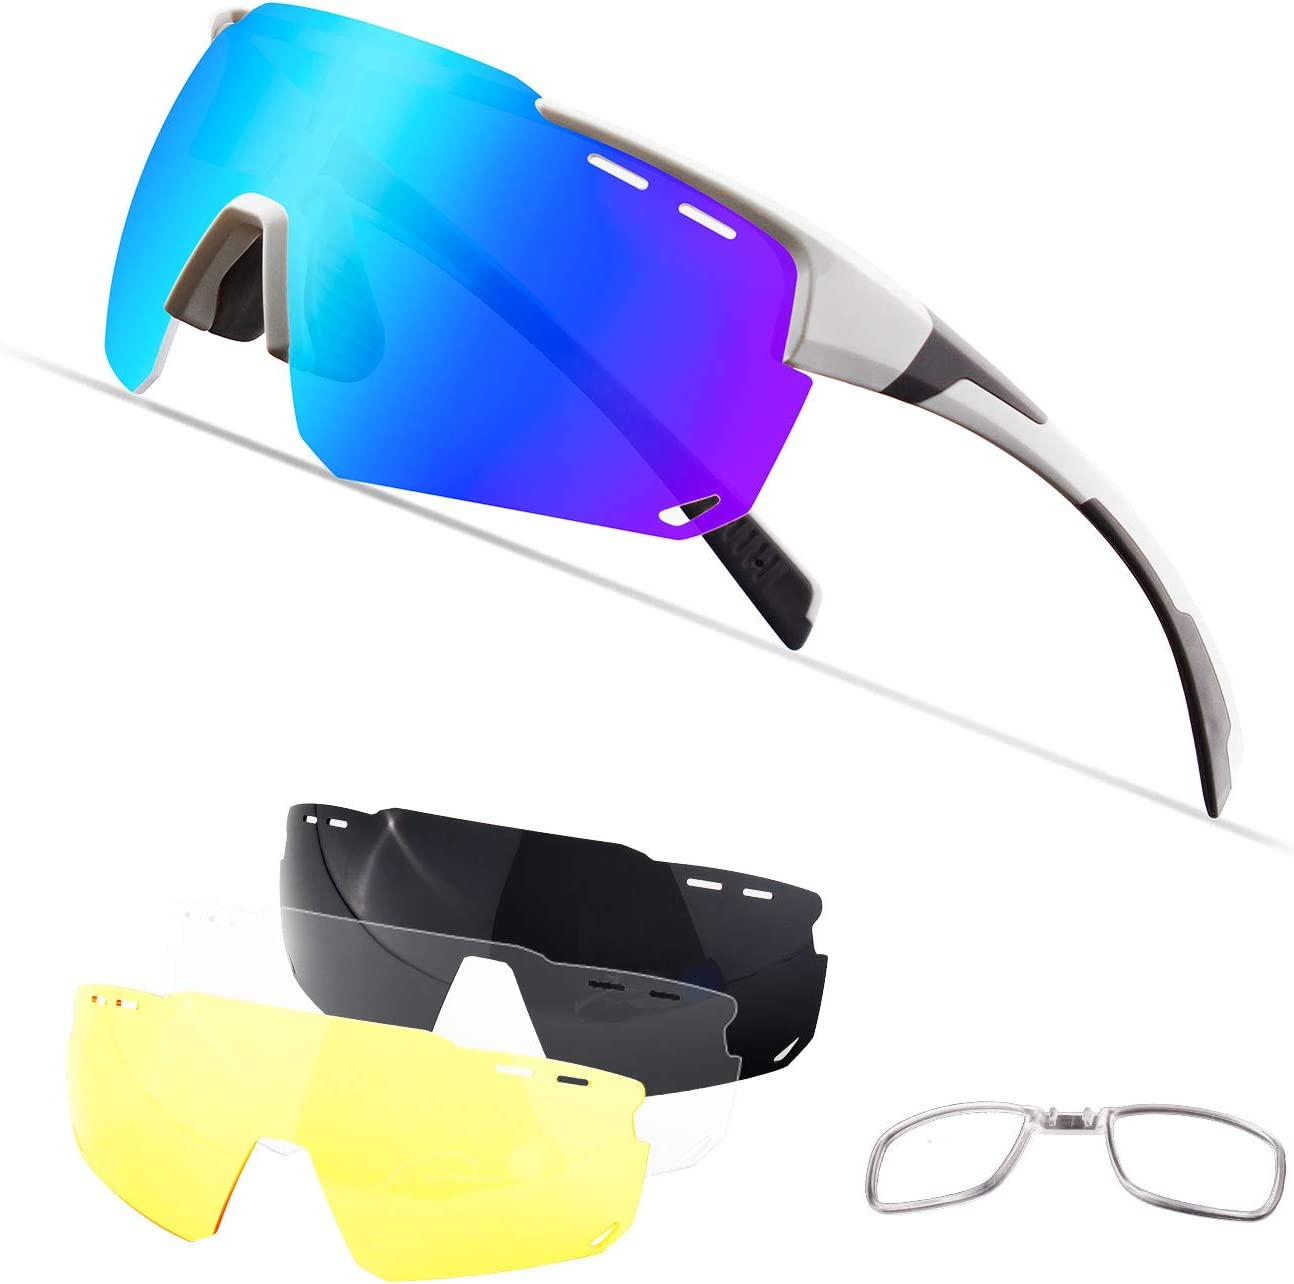 Xiyalai Sports Sunglasses,Polarized Cycling Sports Sunglasses,Cycling Glasses for Men Women with 4 Interchangeable Lenes for Running Baseball Golf Driving